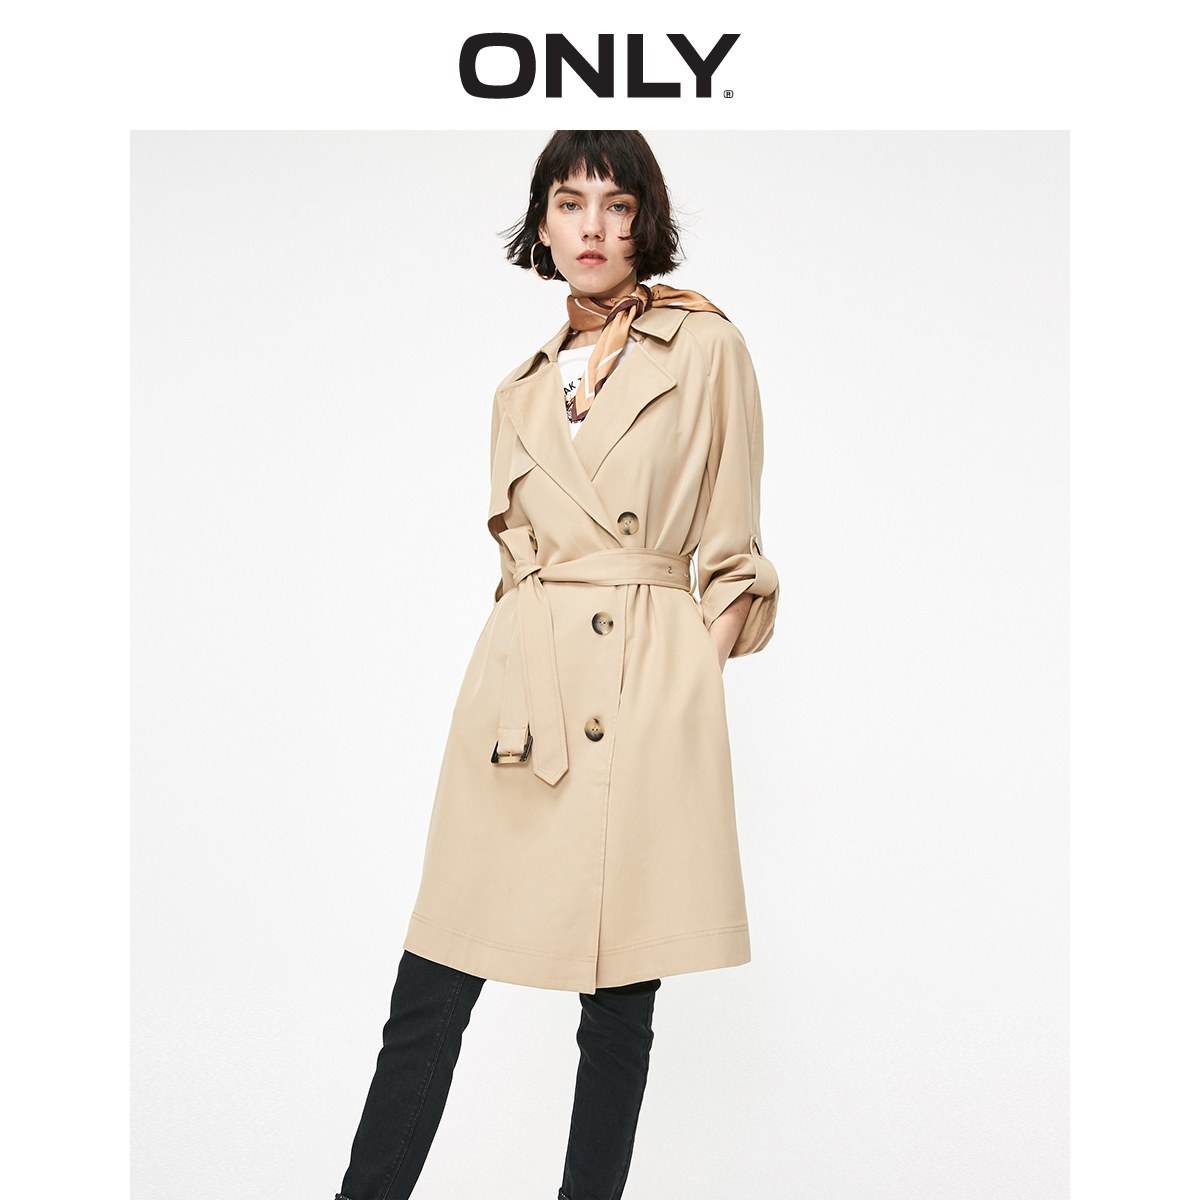 ONLY Women's Loose Fit Cinched Waist Mid-length Trench Coat | 119136532